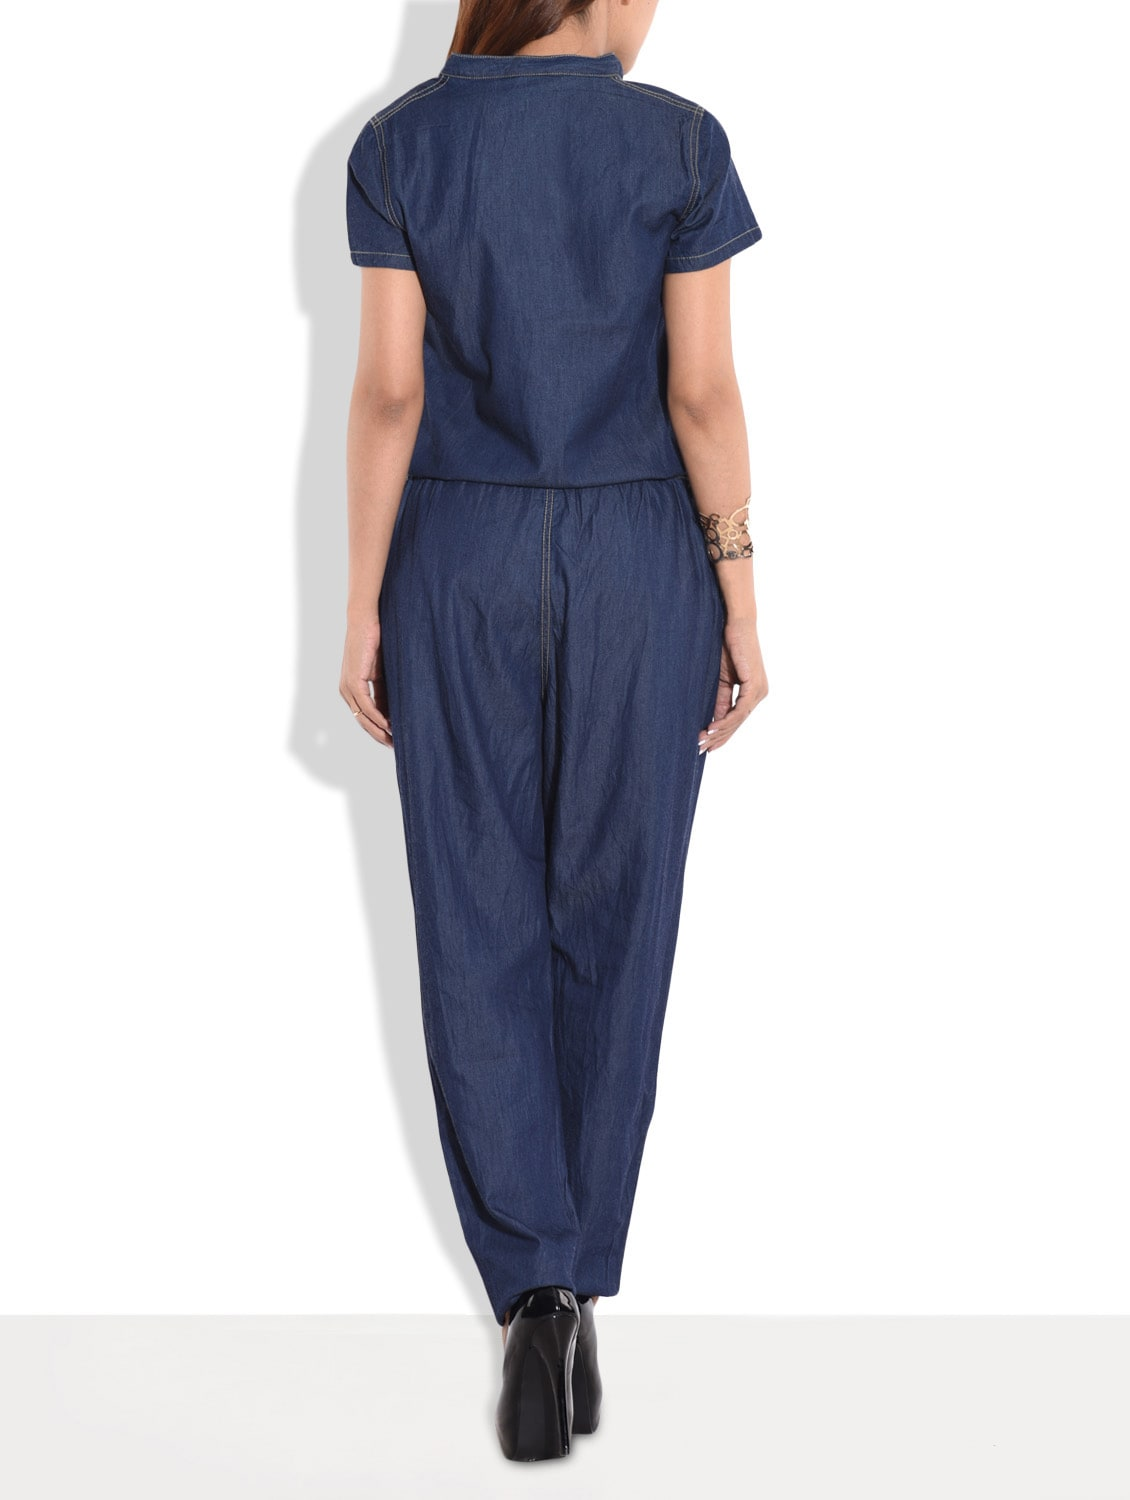 3cda0f3ace64 Buy Dark Blue Denim Jumpsuit for Women from The Vanca for ₹900 at 61% off